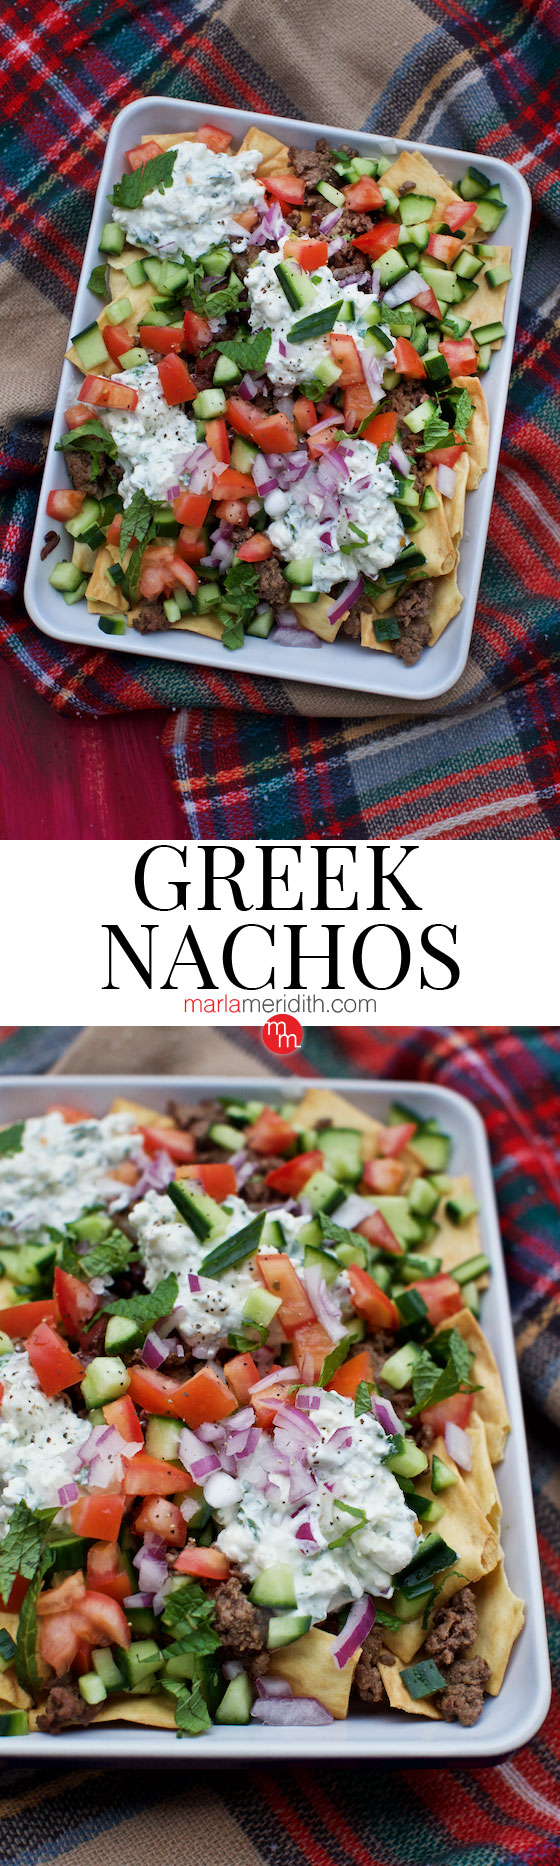 Greek Nachos, serve this delicious recipe at your next party! MarlaMeridith.com ( @marlameridith )